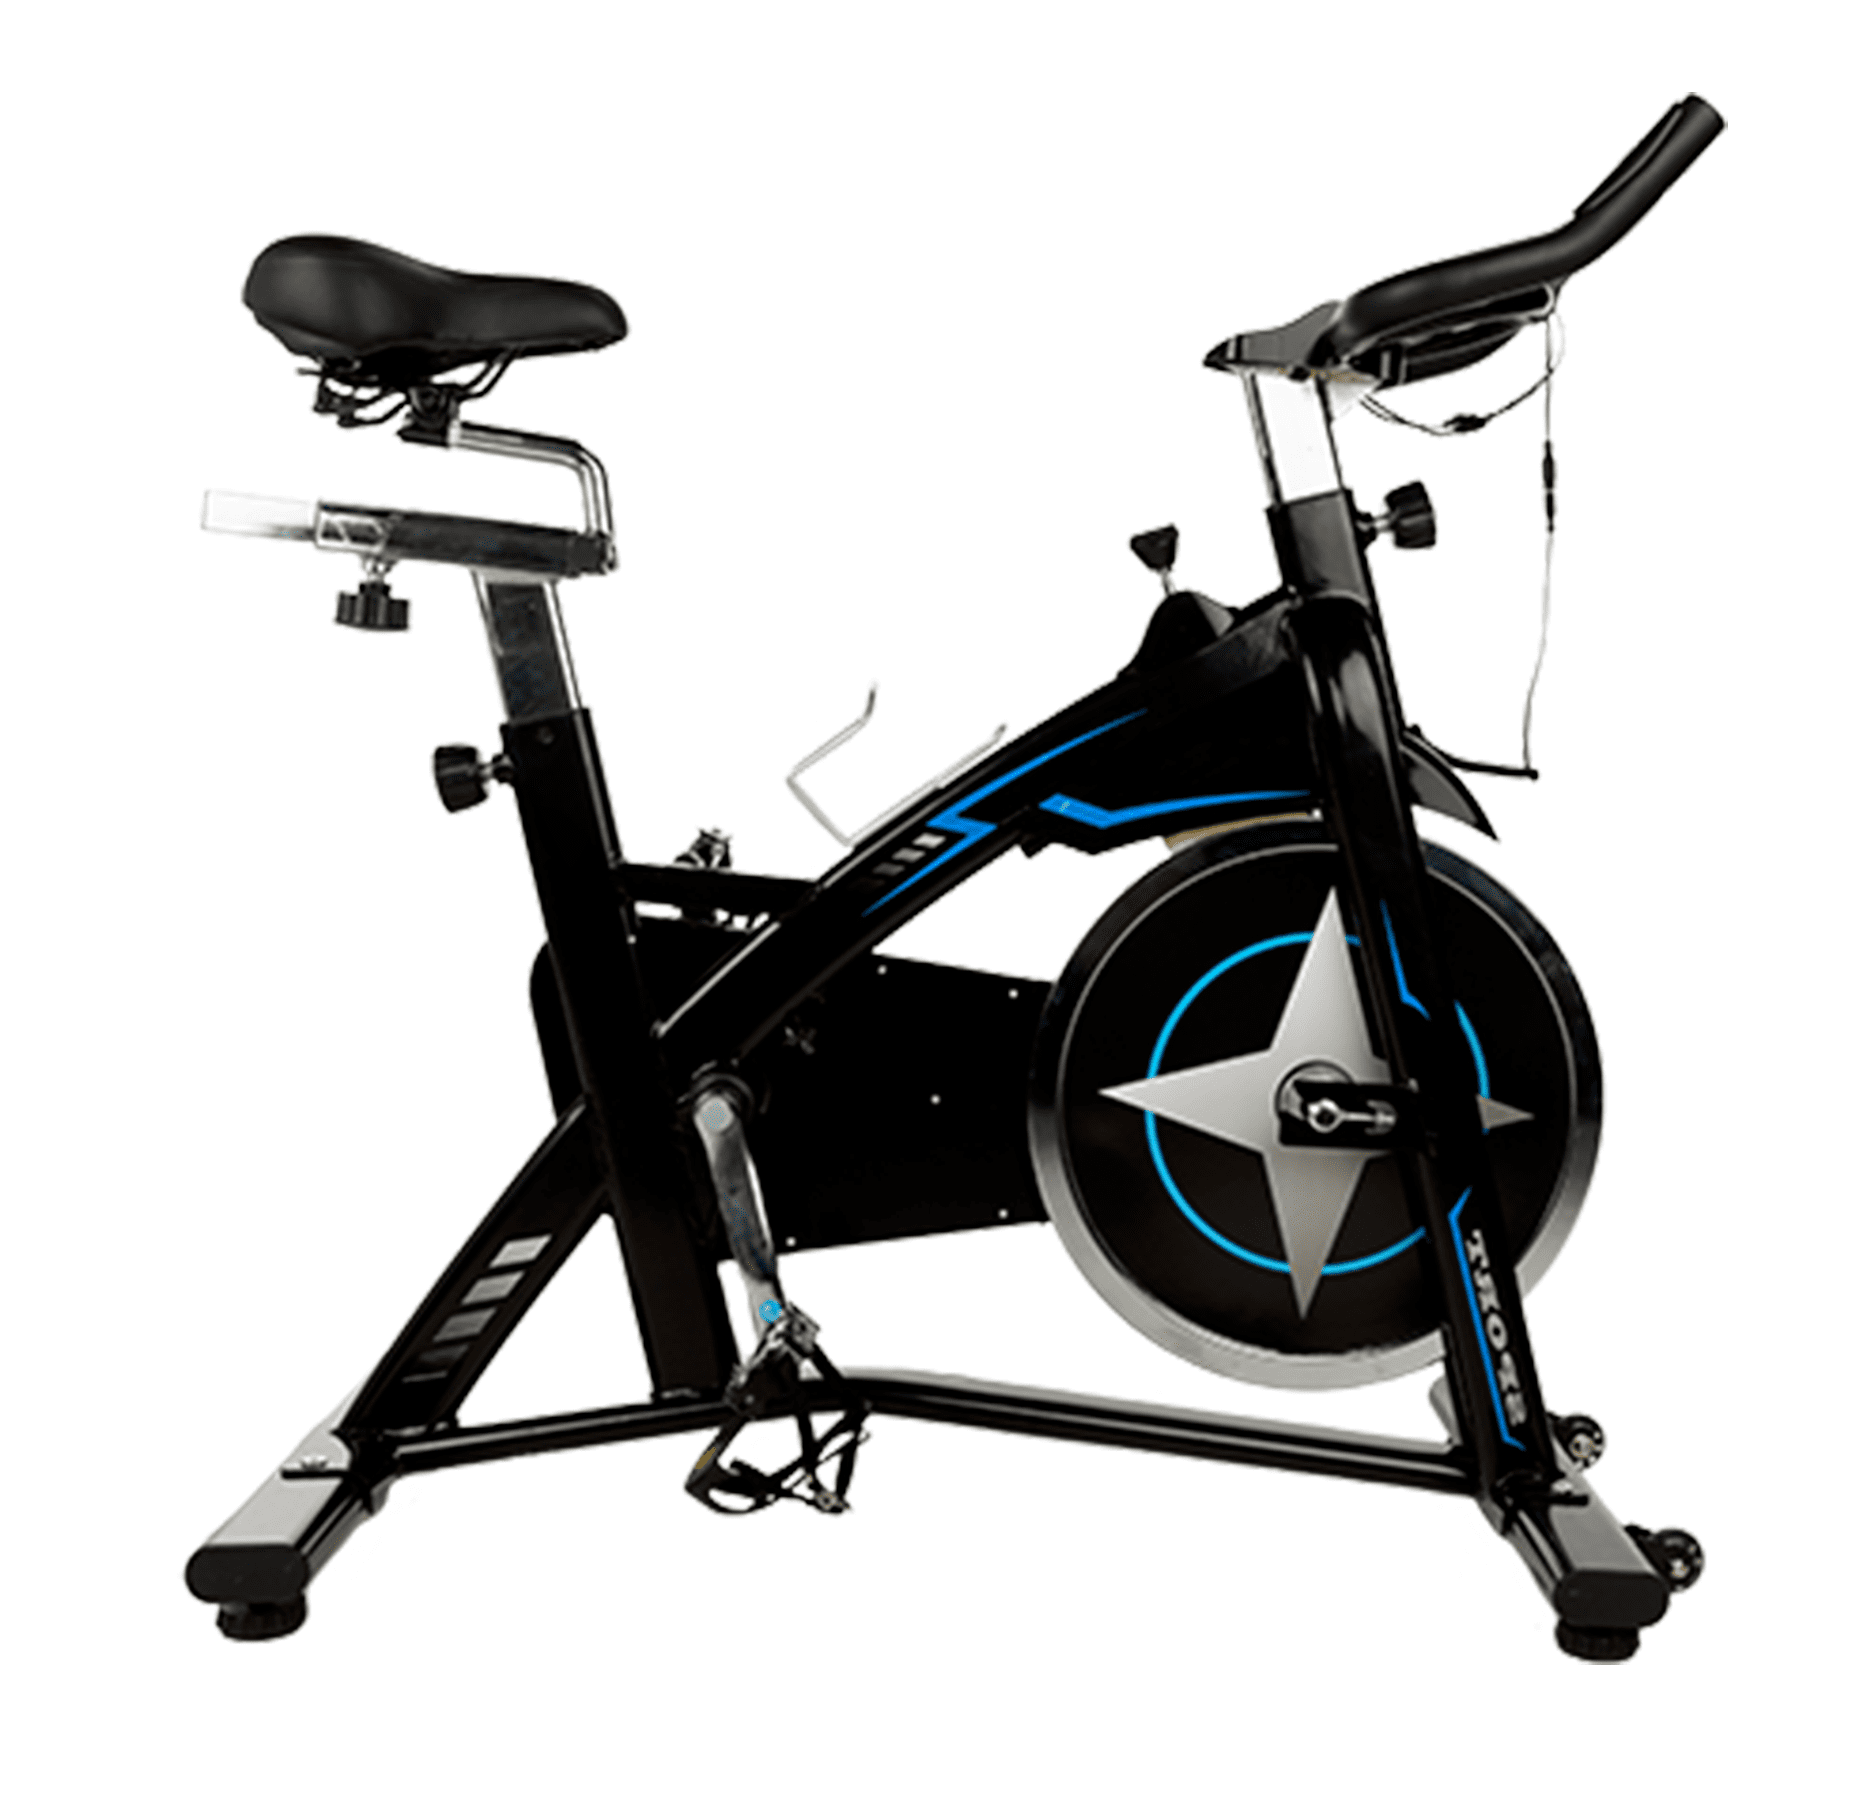 Spinbikes fitness equipment hire and buy